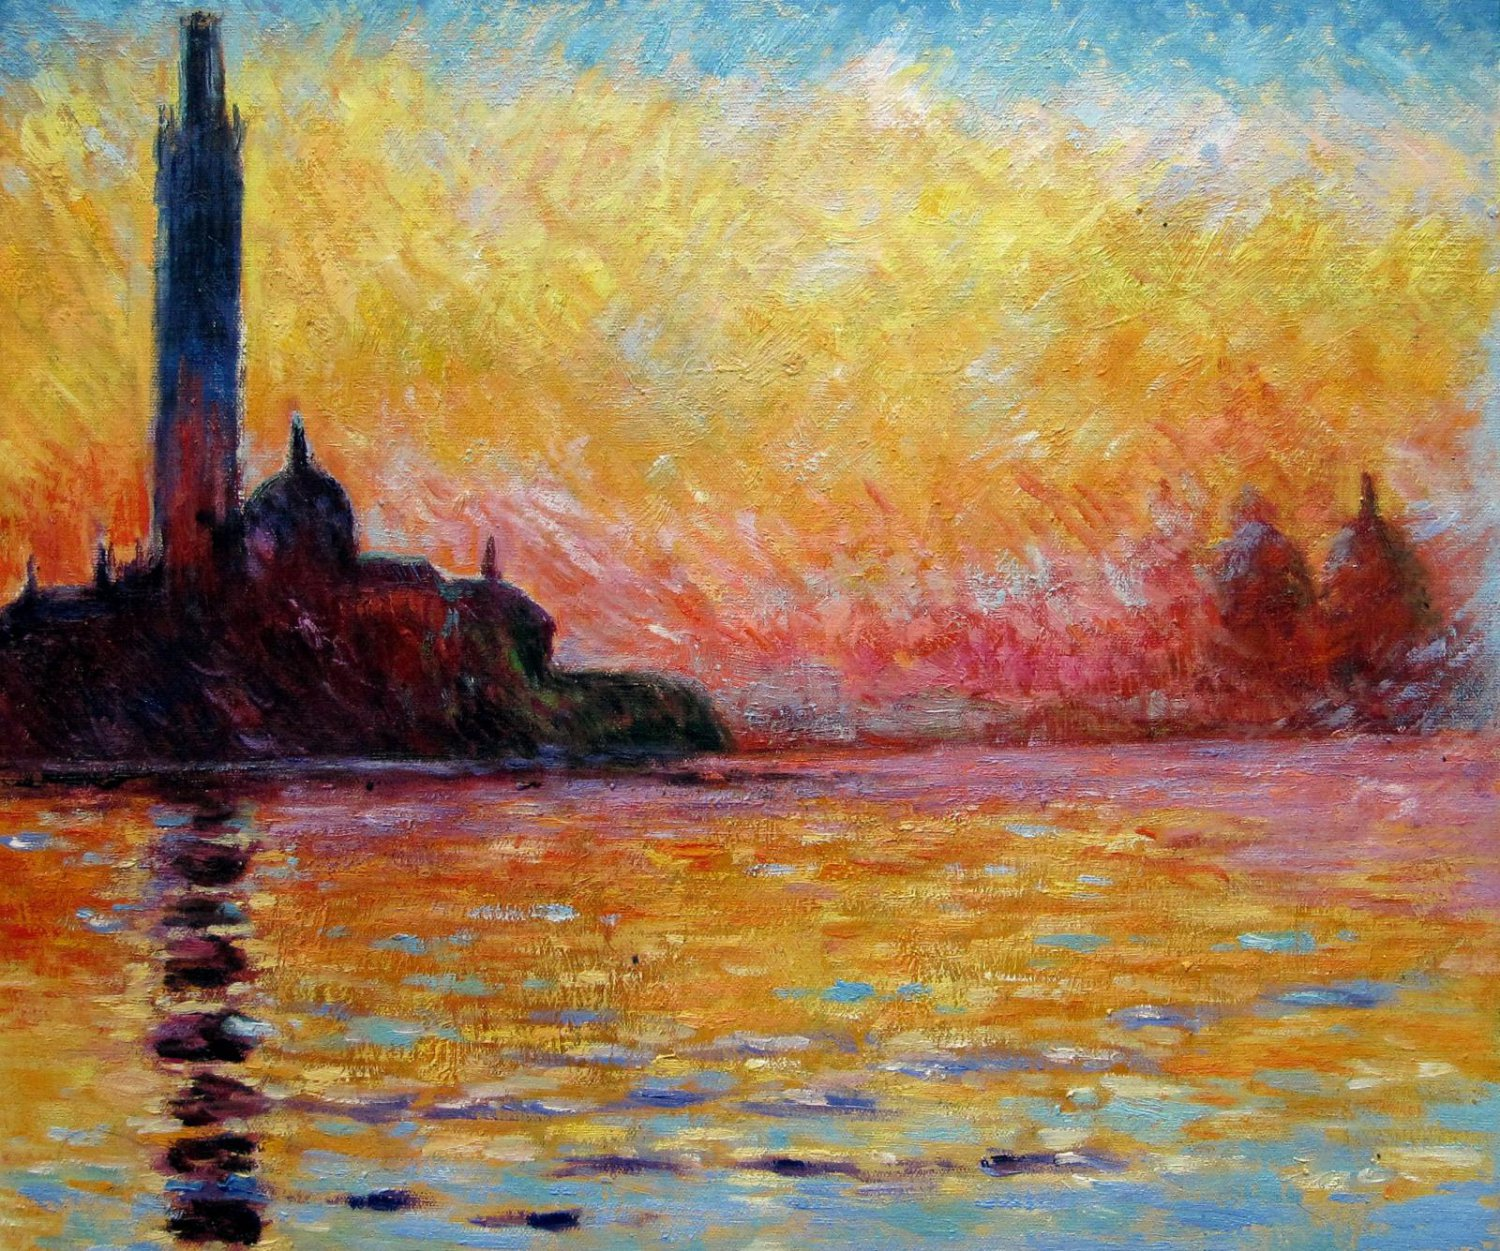 Rep. Claude_Monet 24x36 in. stretched Oil Painting Canvas Art Wall Decor modern03D